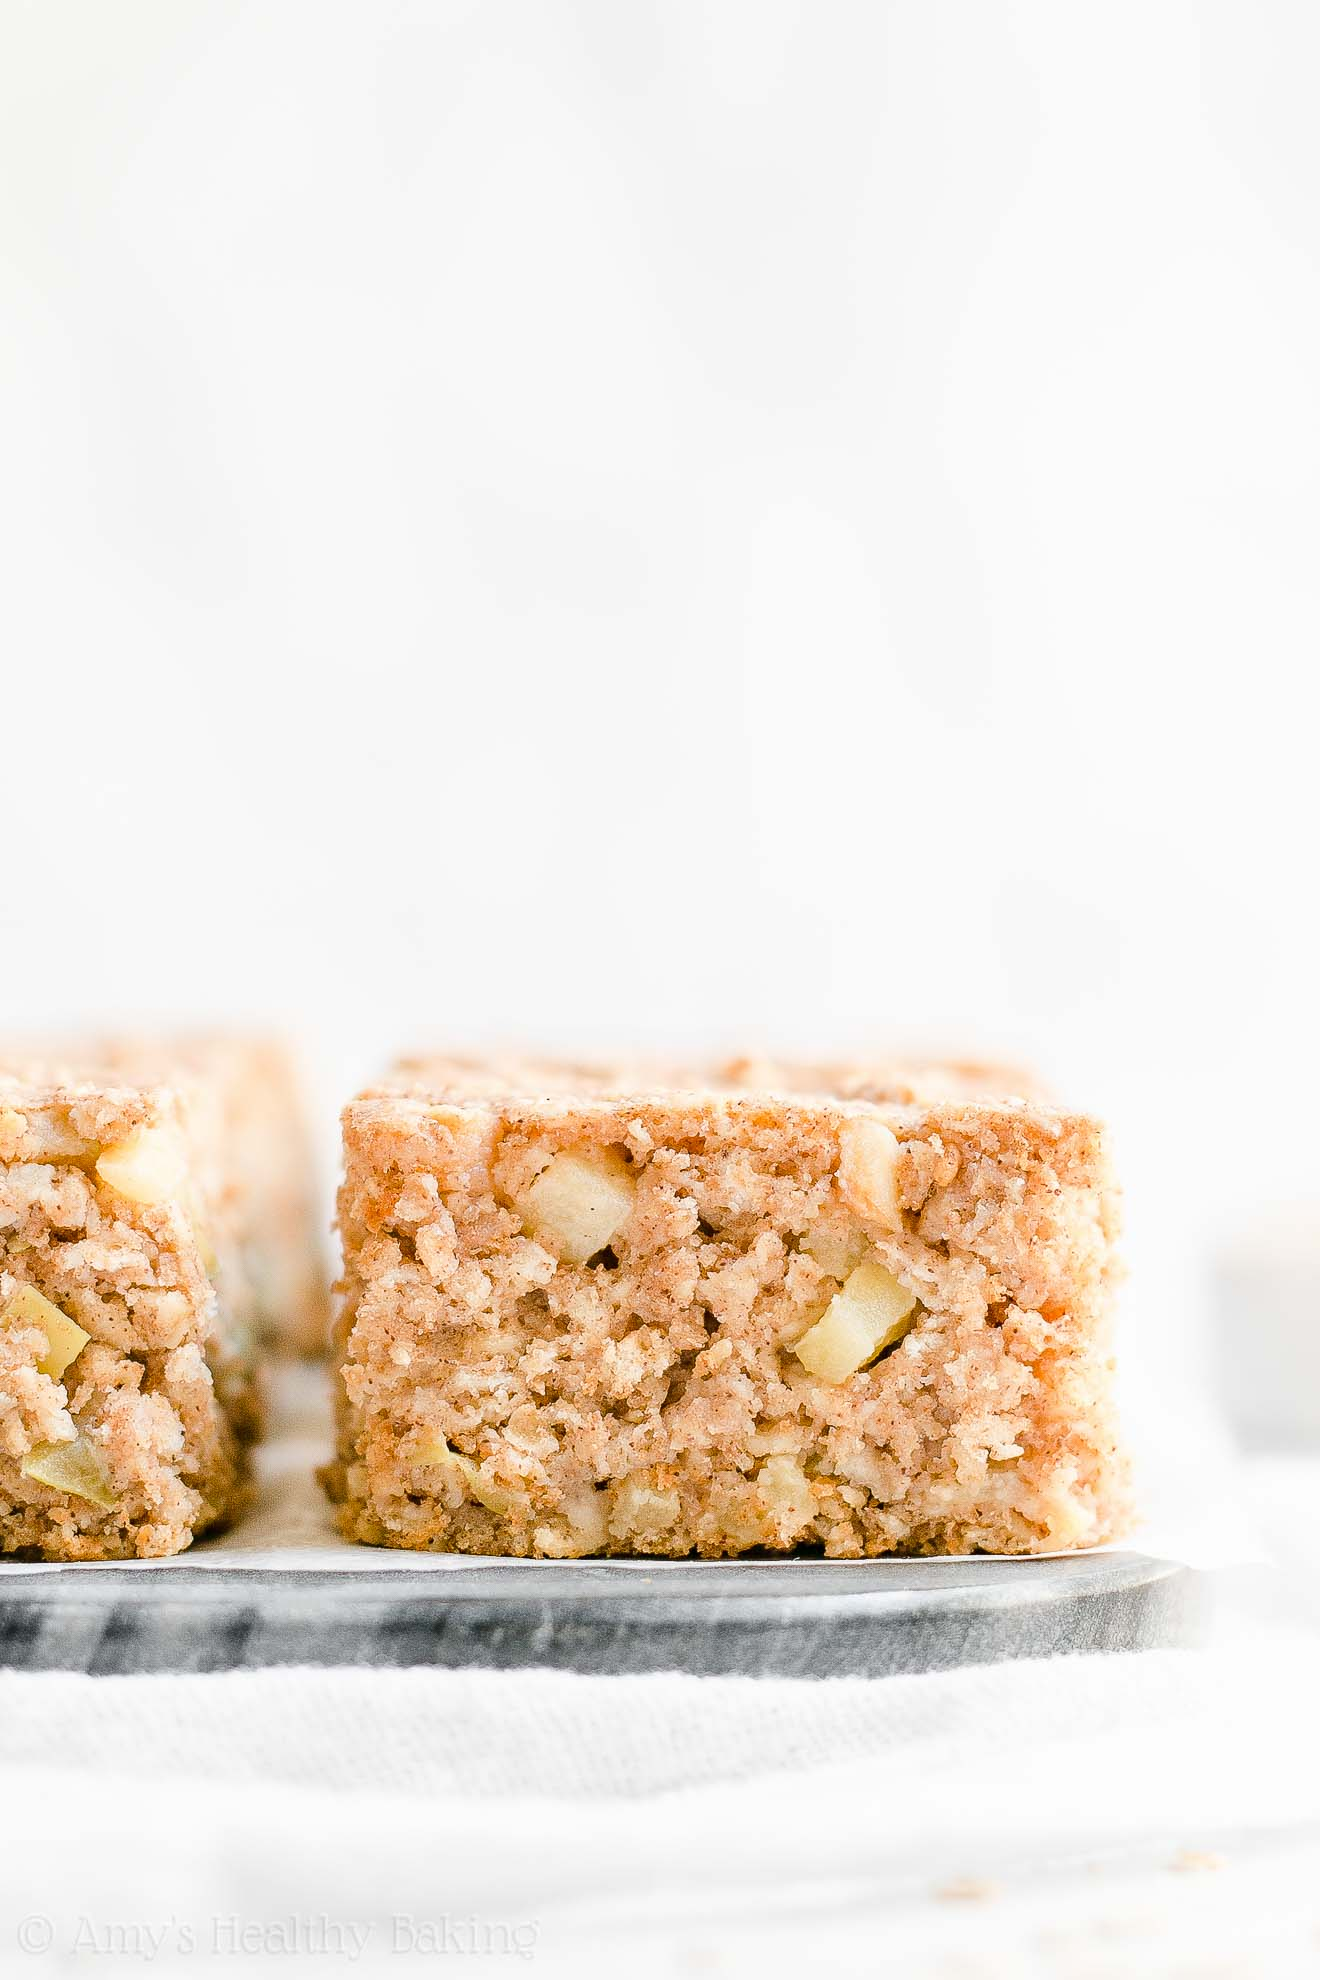 Clean Eating Healthy Low Calorie Cinnamon Apple Oatmeal Snack Cake